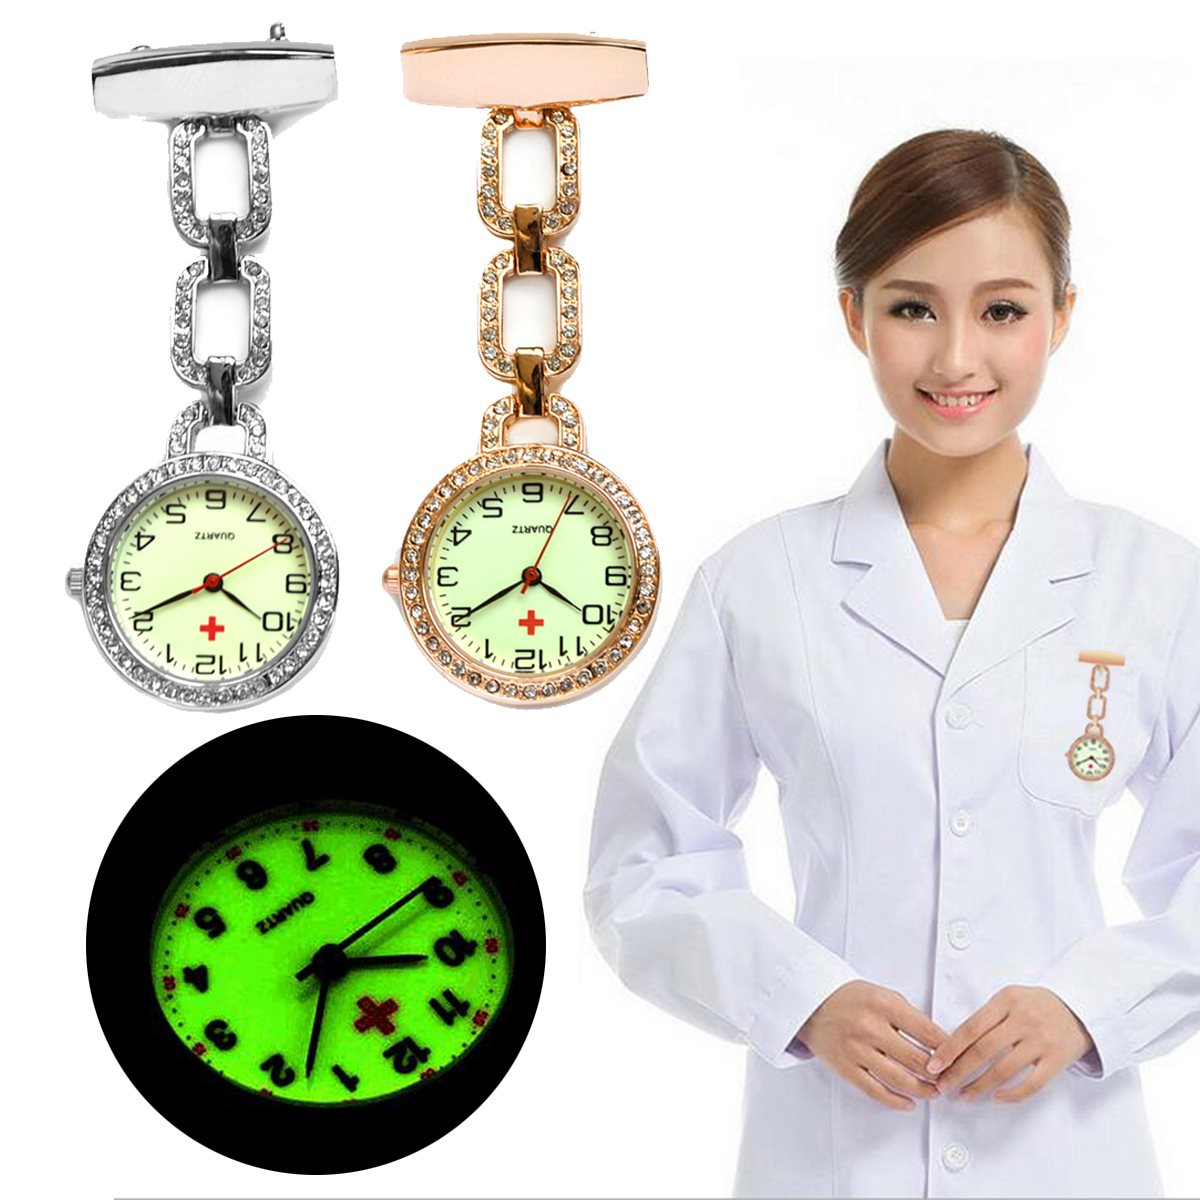 New Luminous Nurses Watches Doctor Clip-on Fob Quartz Watch Steel Noctilucent Brooch Hanging Medical Crystal Pocketed Pin Watch new fashion clip nurse doctor luminous pendant pocket watches quartz red cross brooch nurses watch fob hanging medical watch